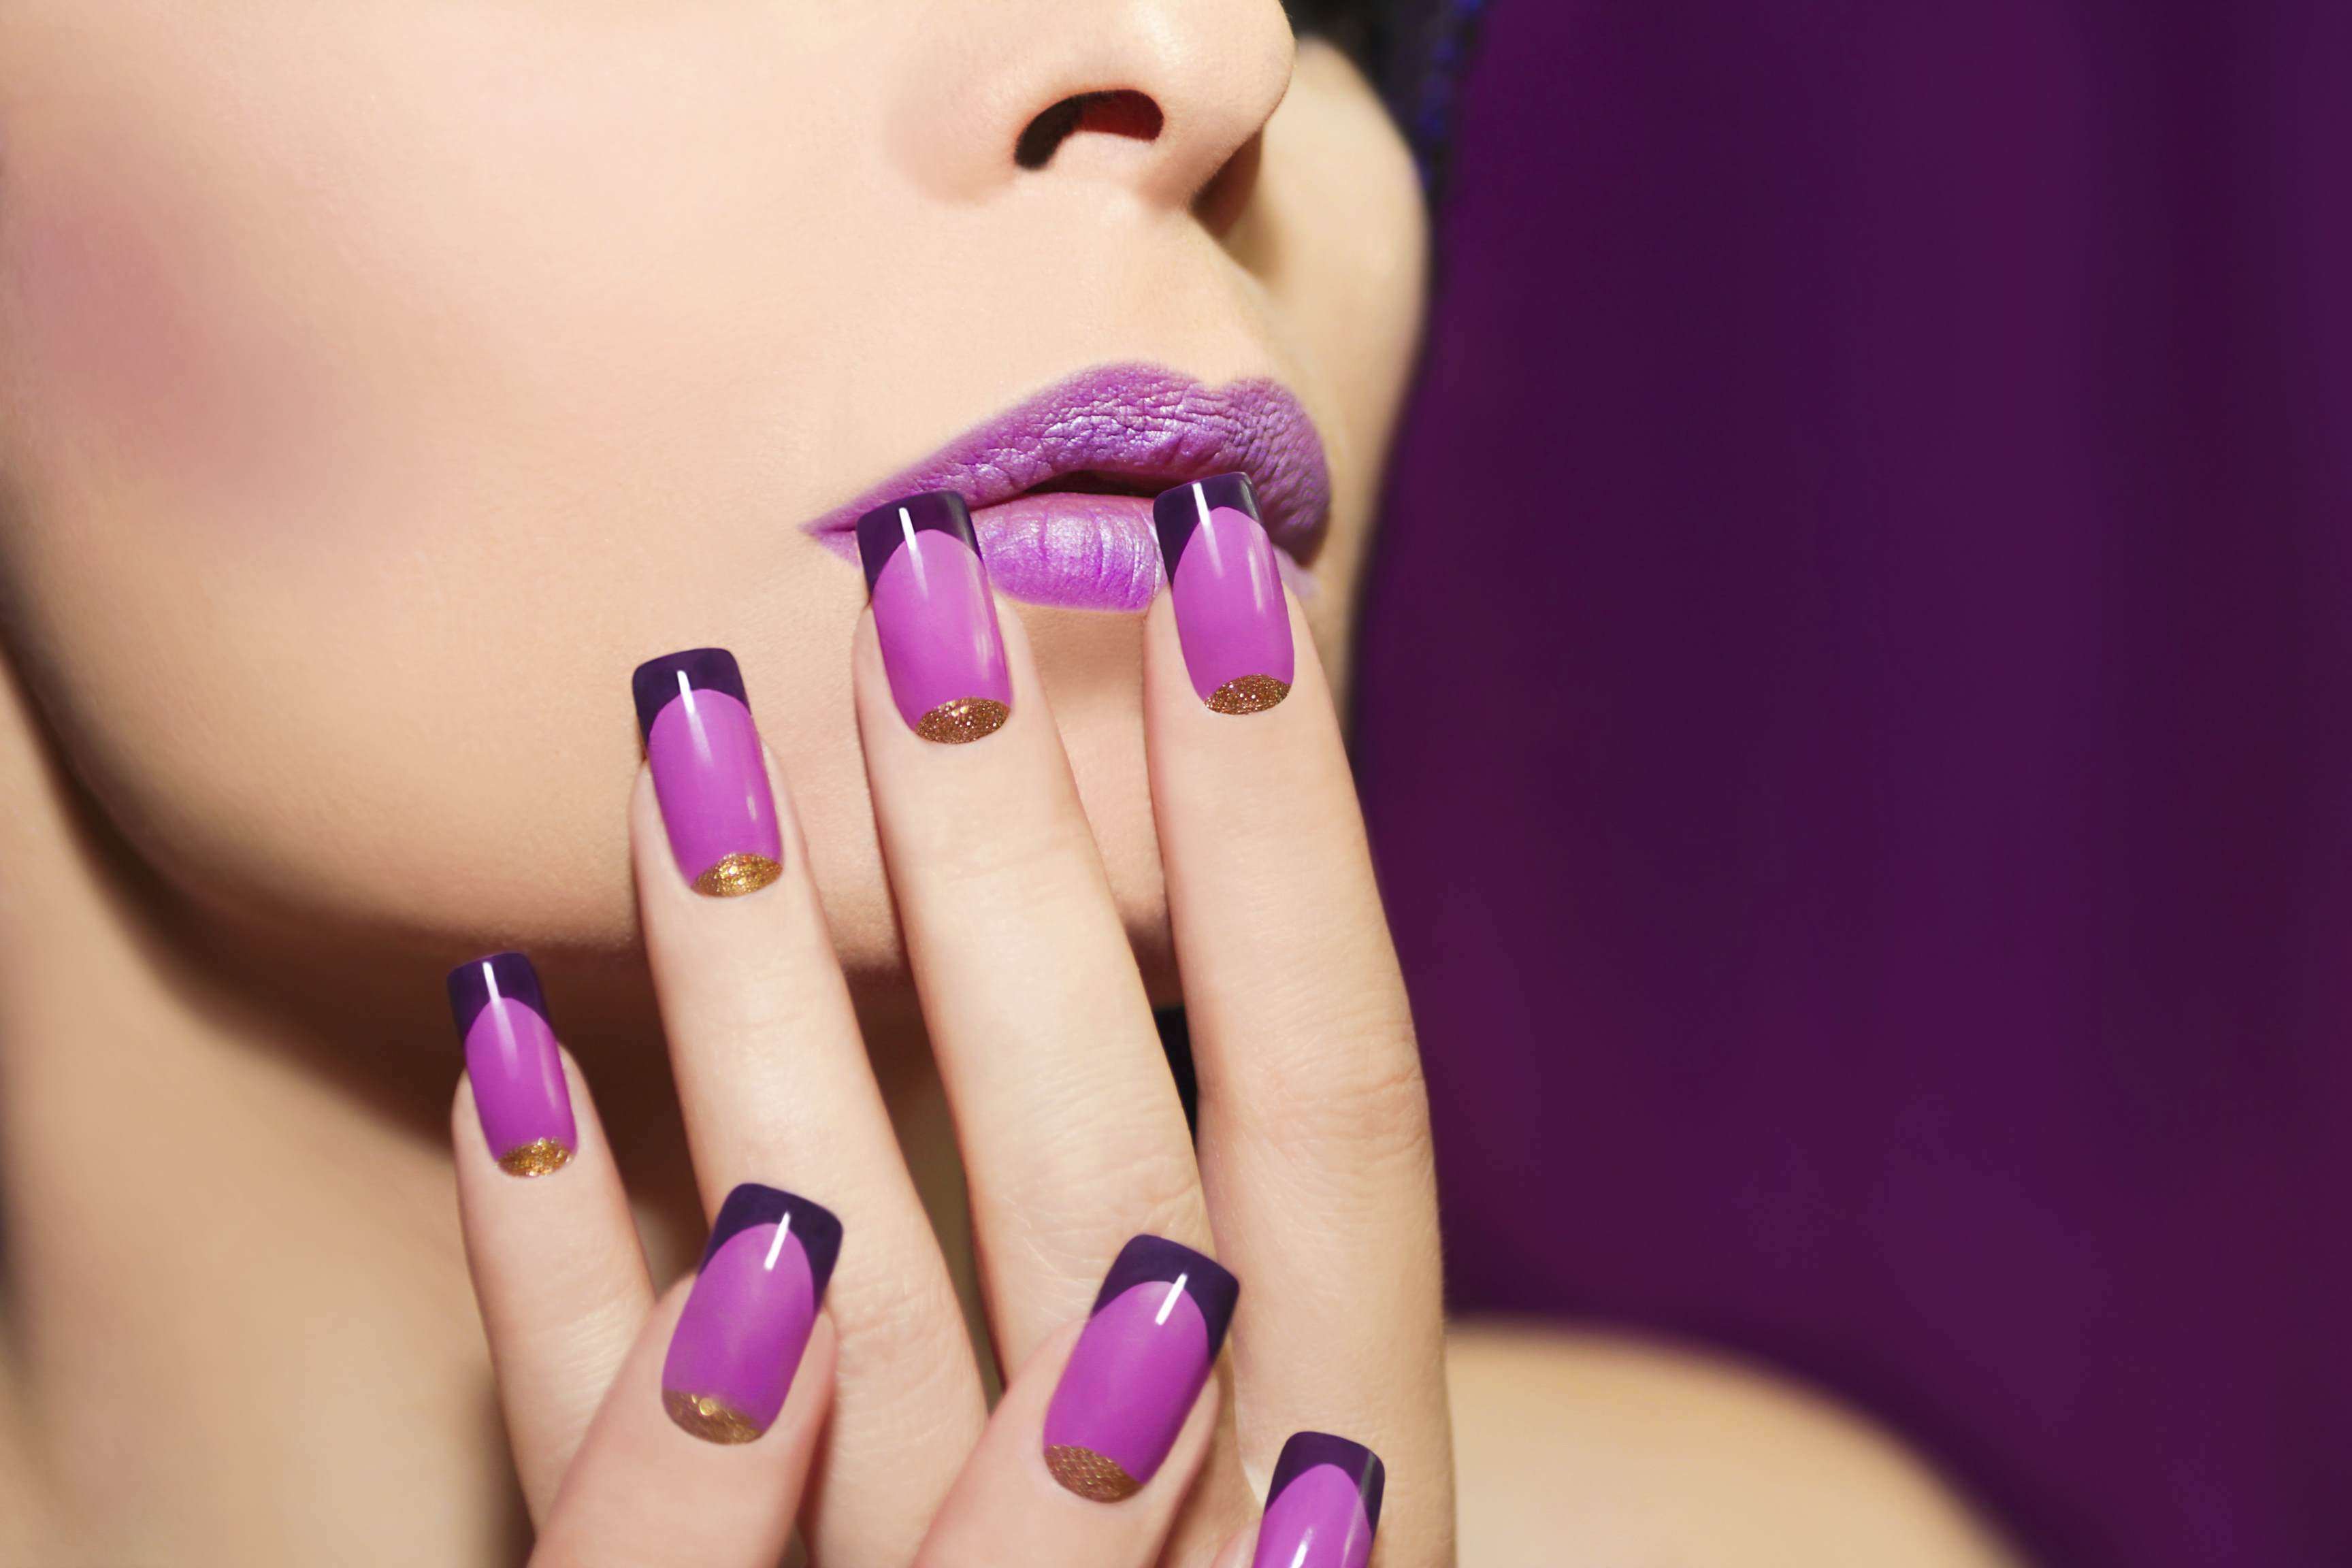 Female wearing purple lipstick with purple and black french manicure and gold glitter showing how Croda's nail care ingredients can improve nail integrity, prevent damage and lock in moisture